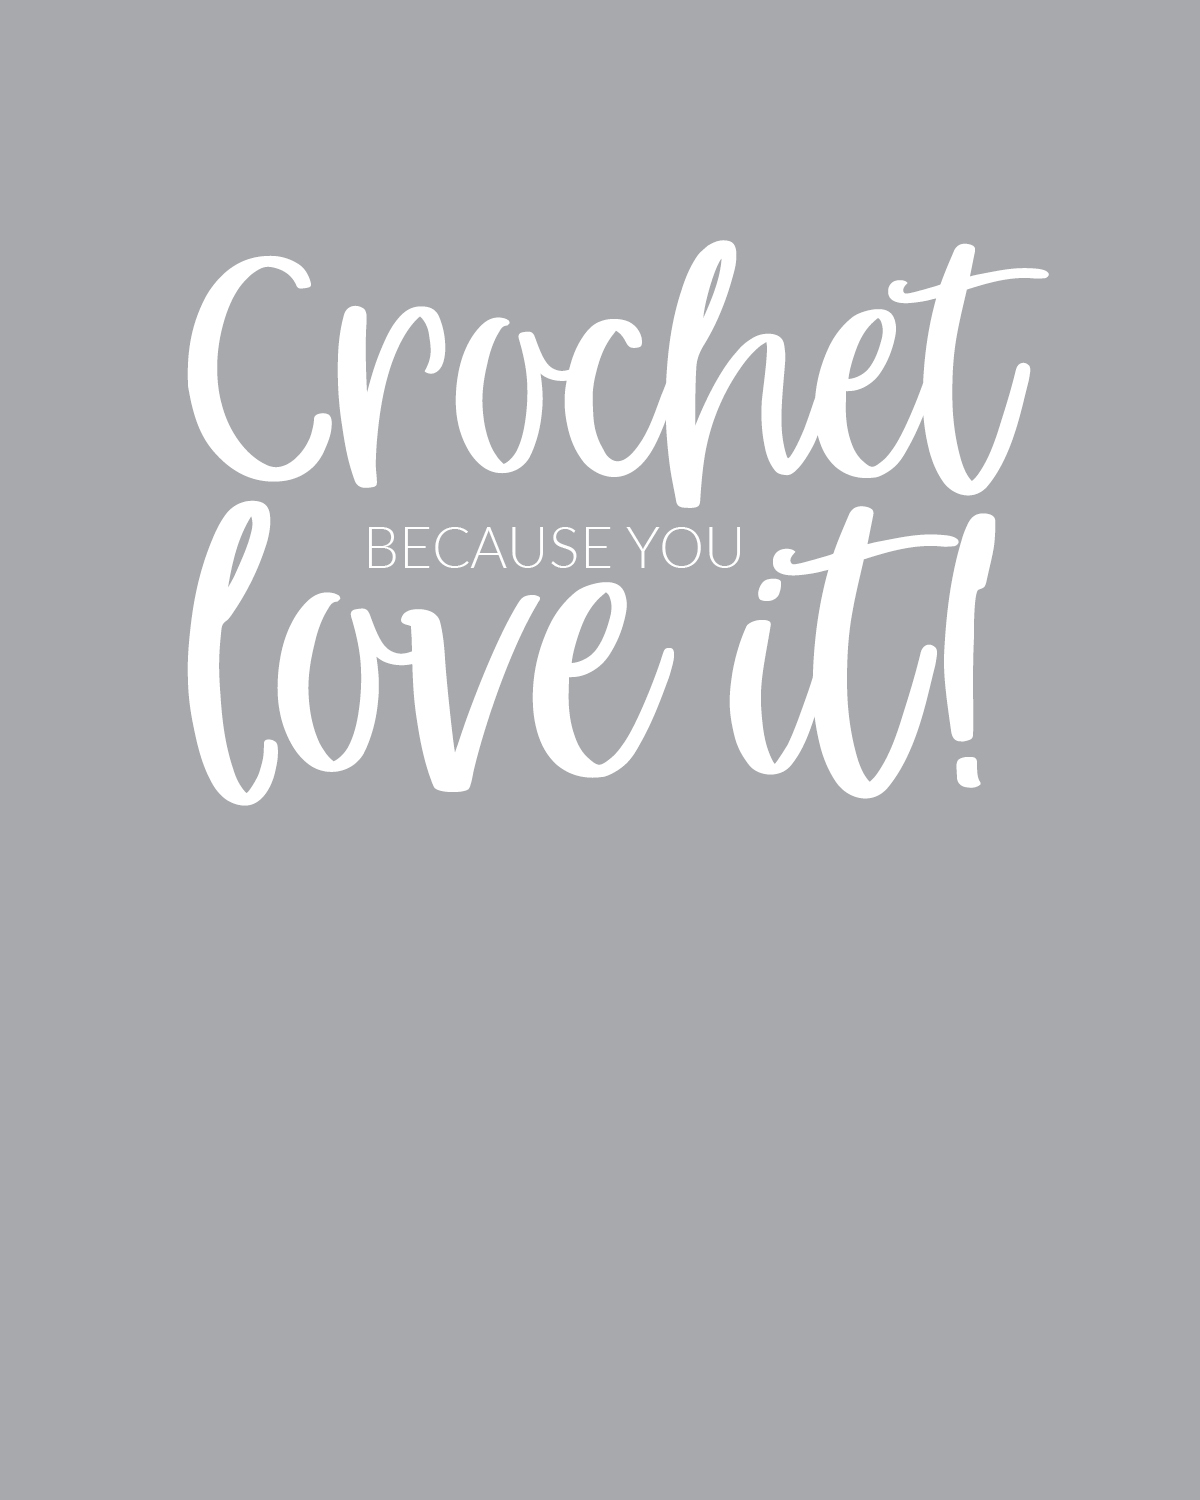 Crochet Because You Love It_web.jpg